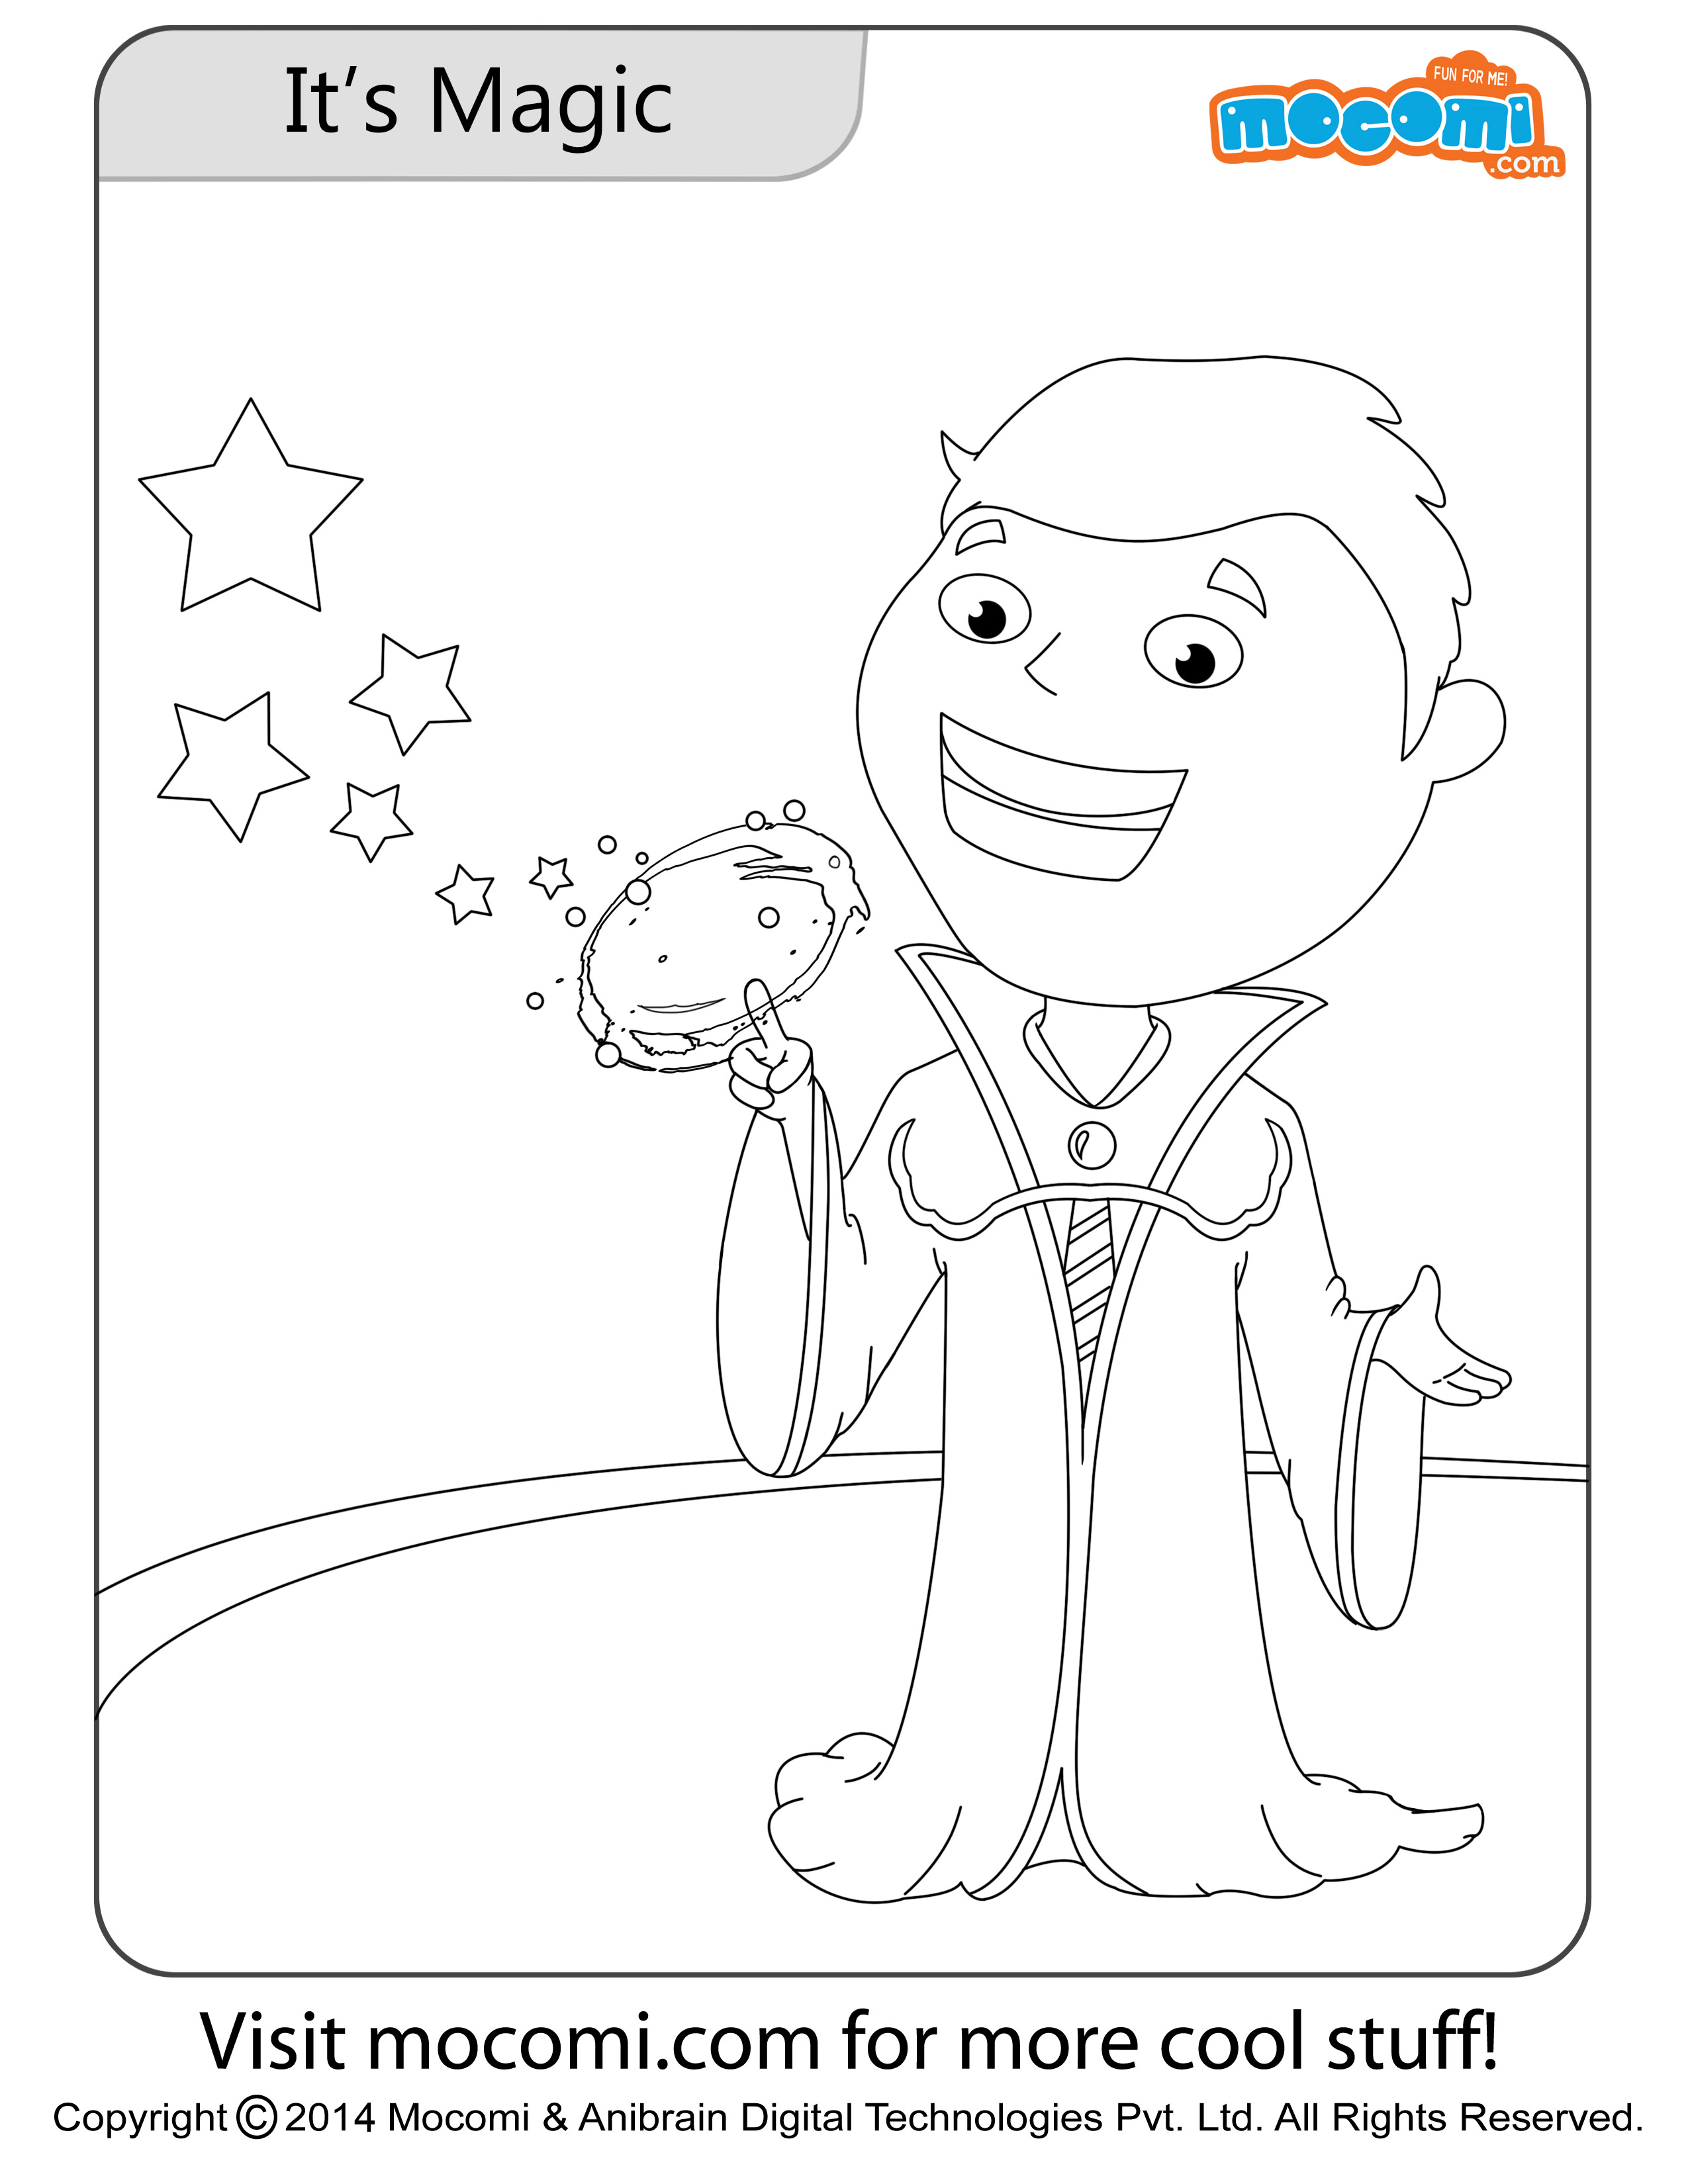 Jojo and Tricks Go Together – Colouring Page